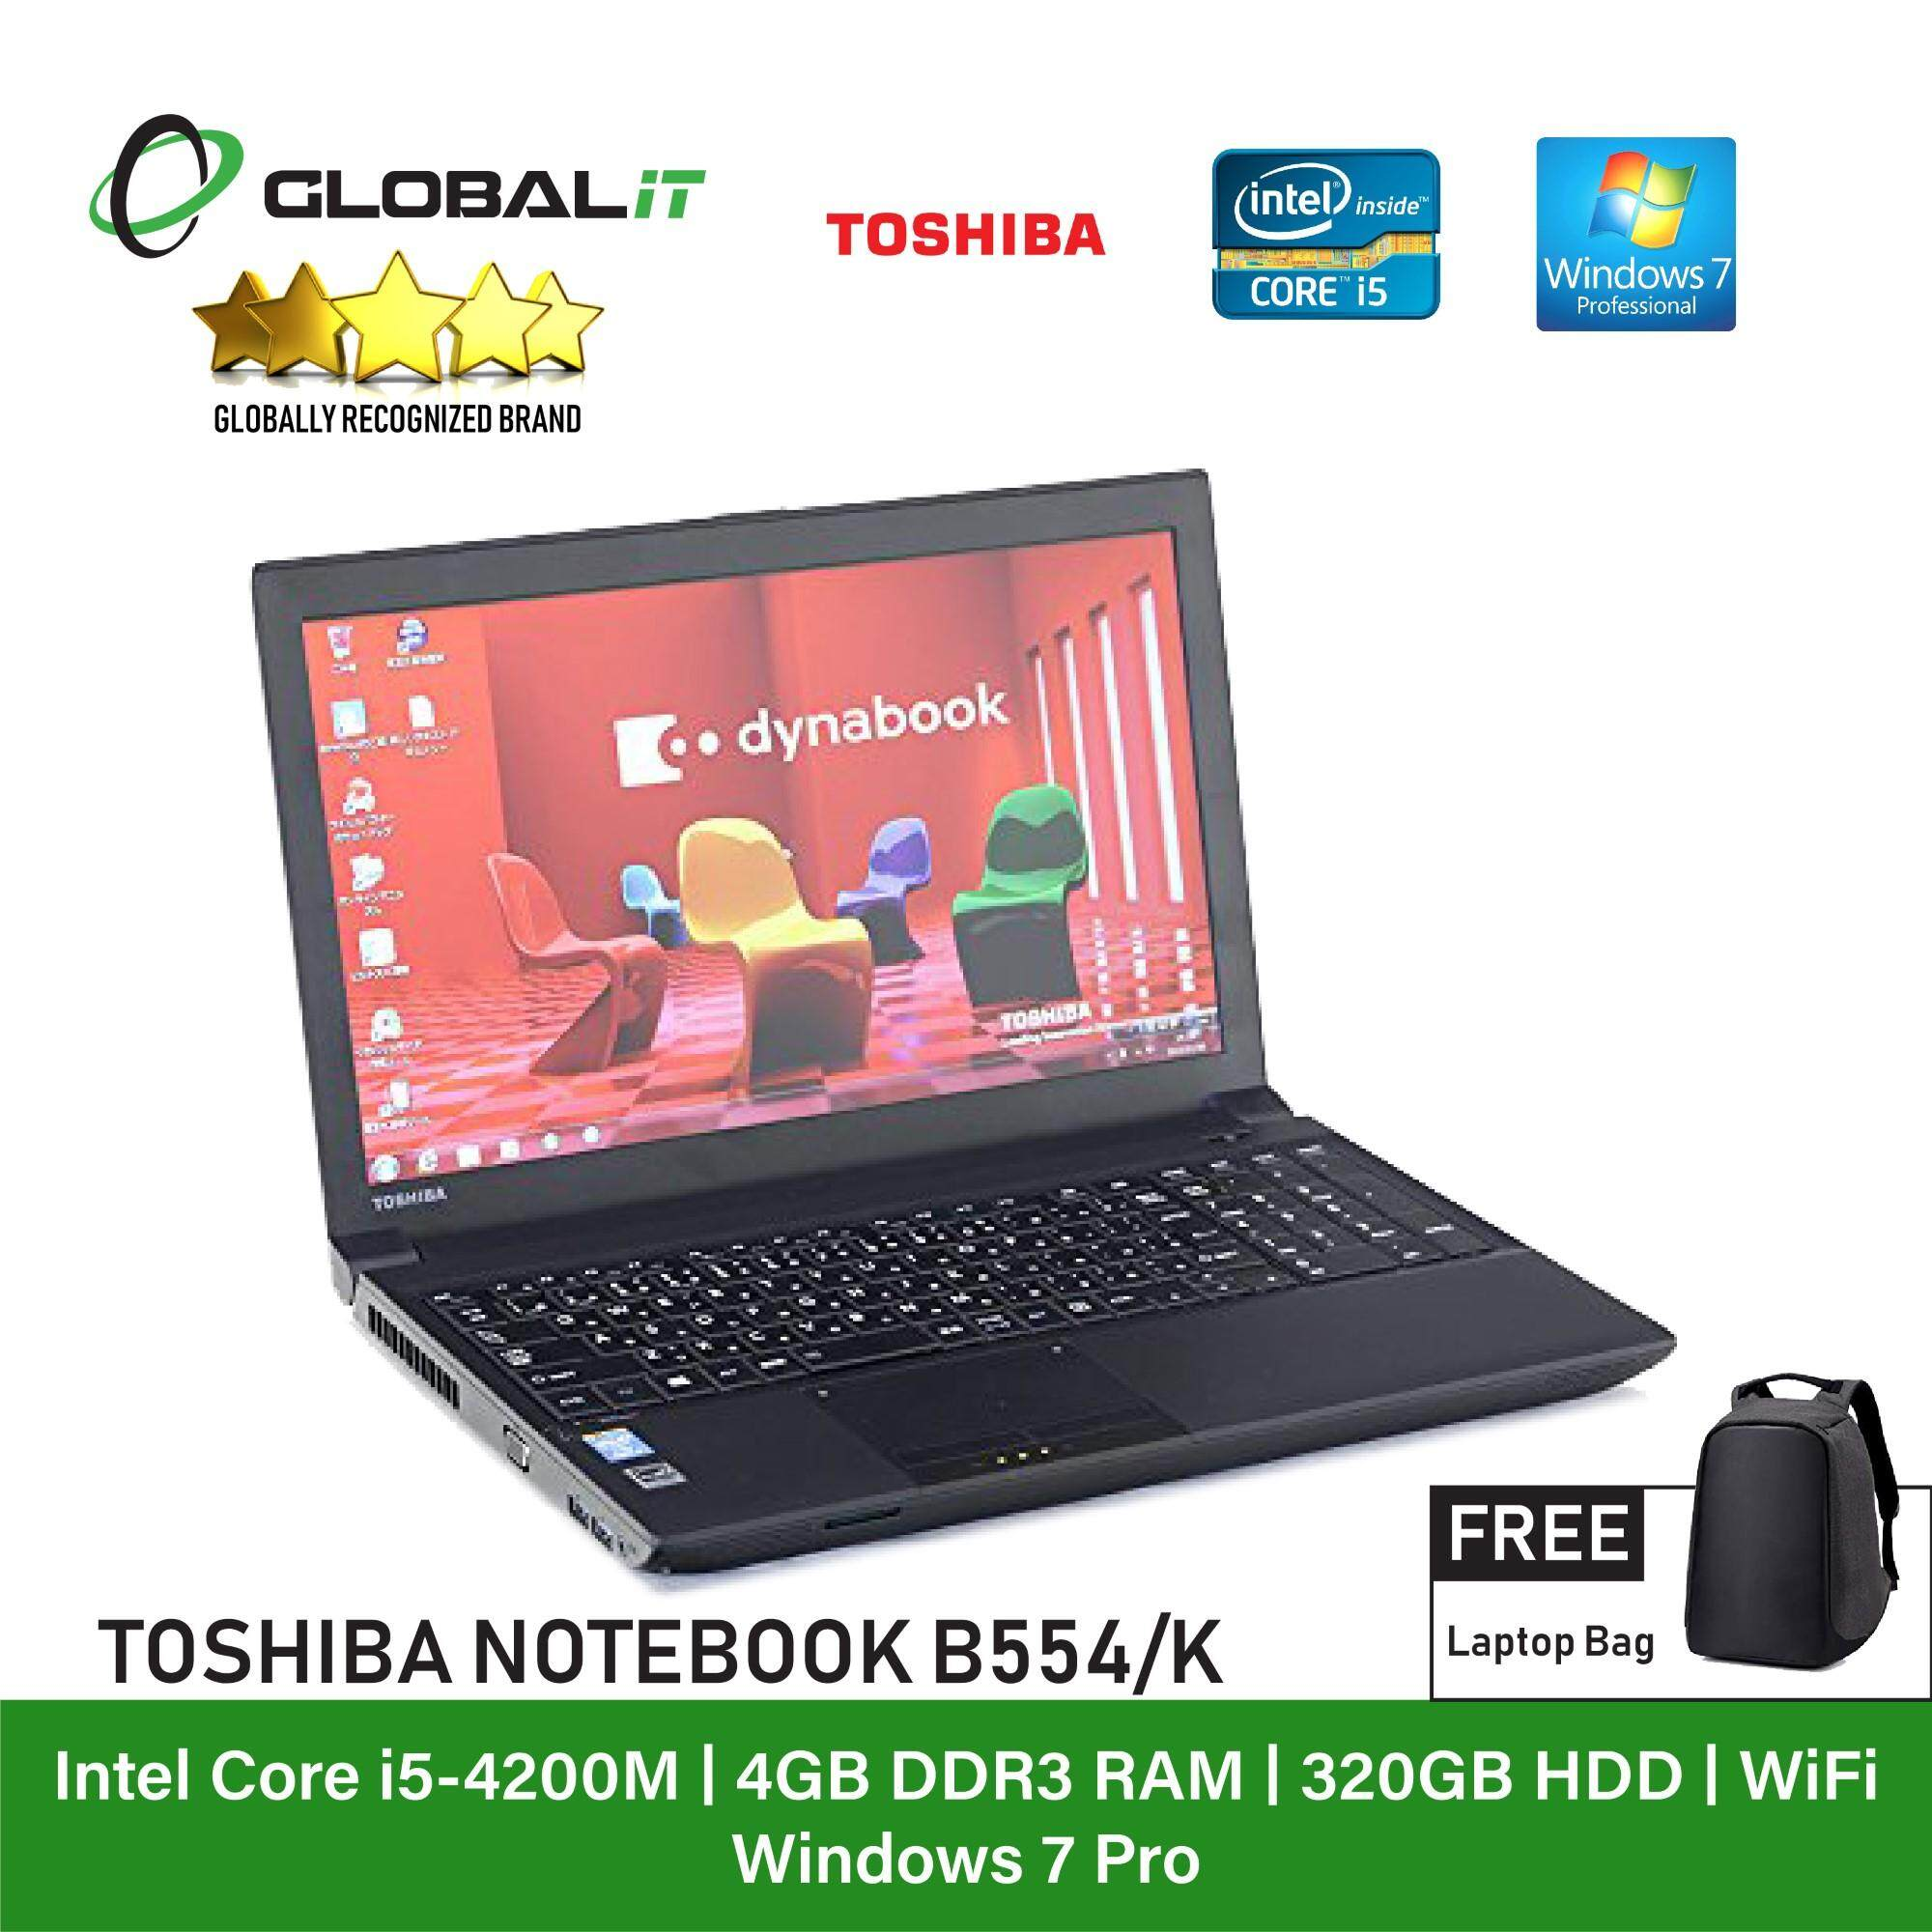 (Refurbished Notebook) Toshiba Dynabook Satellite B554-K Laptop / 15.6 inch LCD / Intel Core i5-4200M / 4GB Ram / 320GB HDD / WiFi / Windows 7 Malaysia